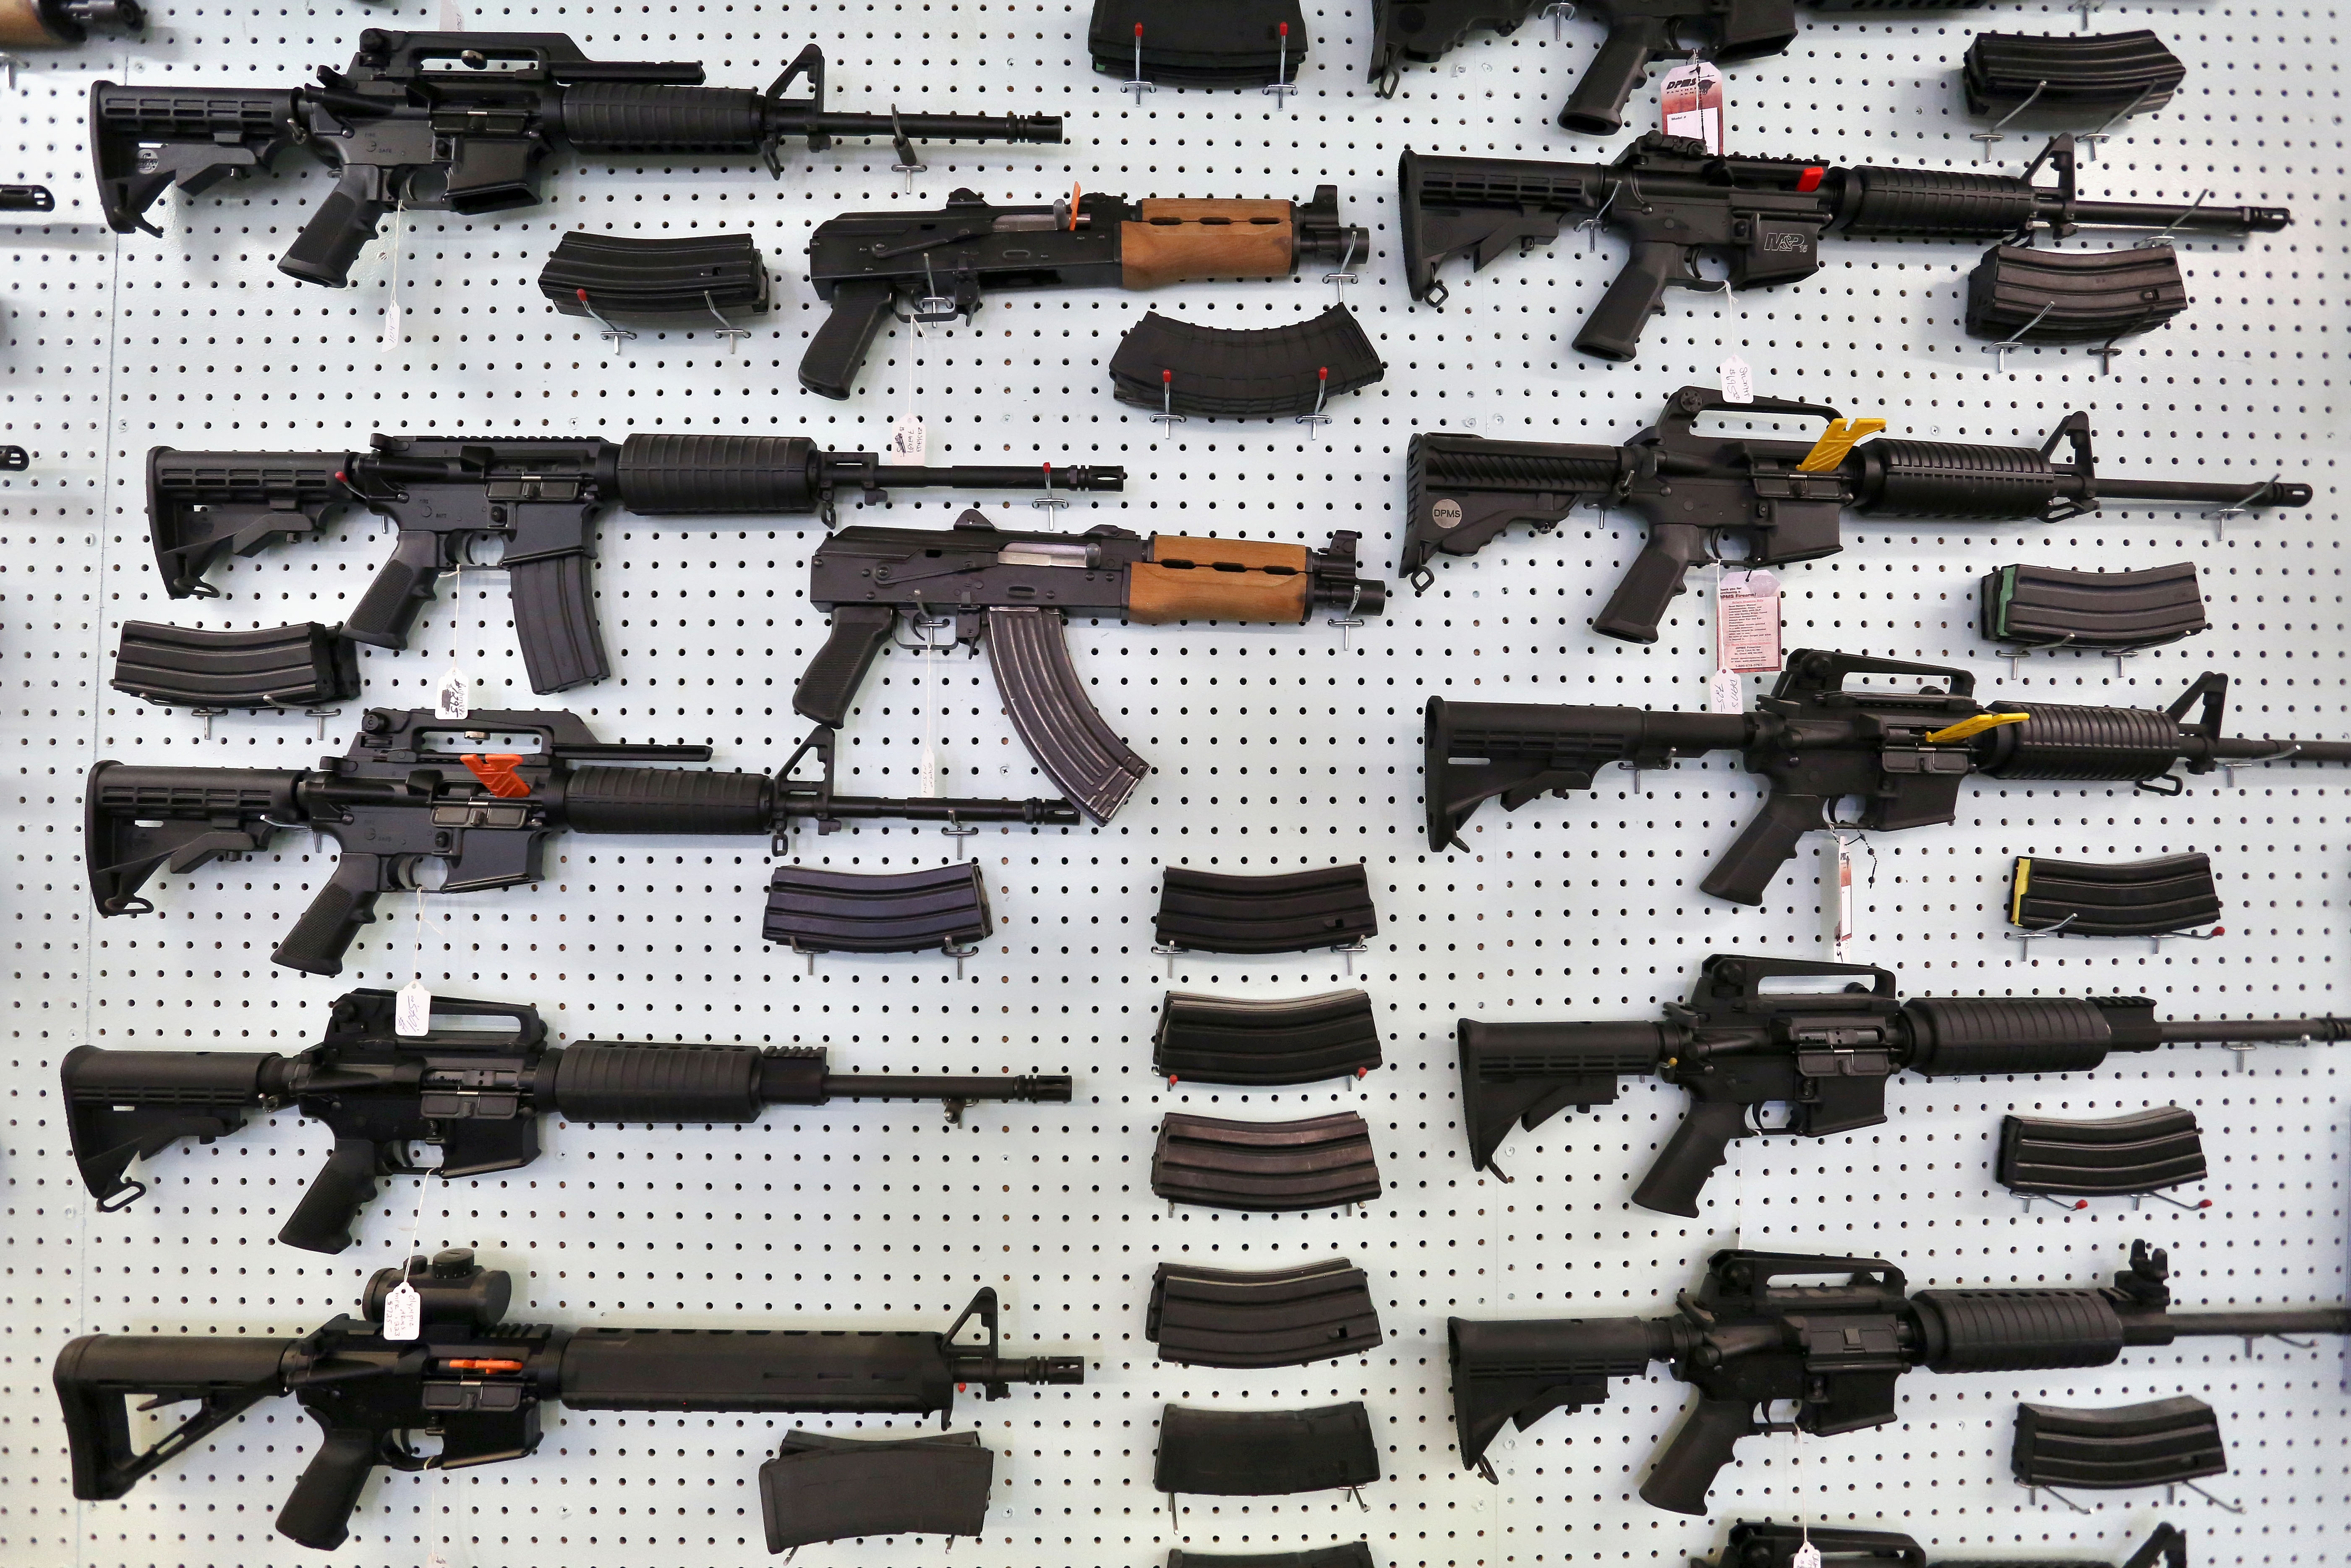 Bloomberg Backed Group Presents Gun Safety Proposal To White House